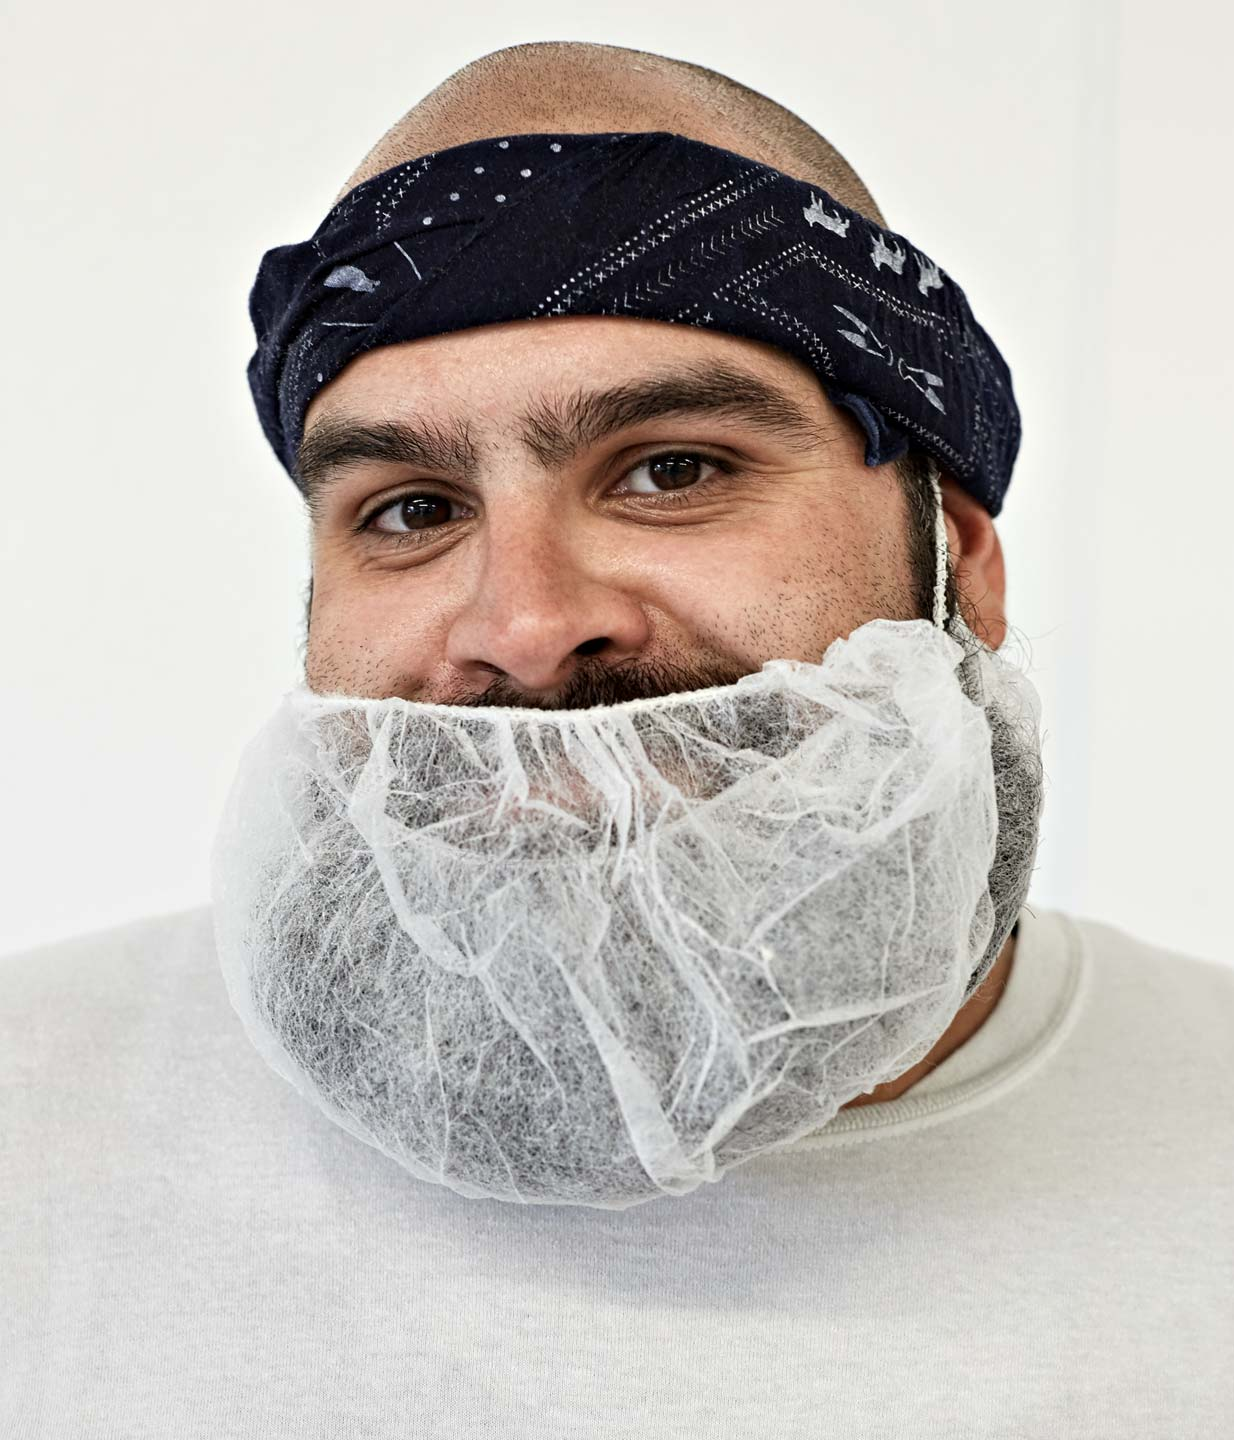 Portrait of food worker with beard net by Atlanta Photographer Nick Burchell